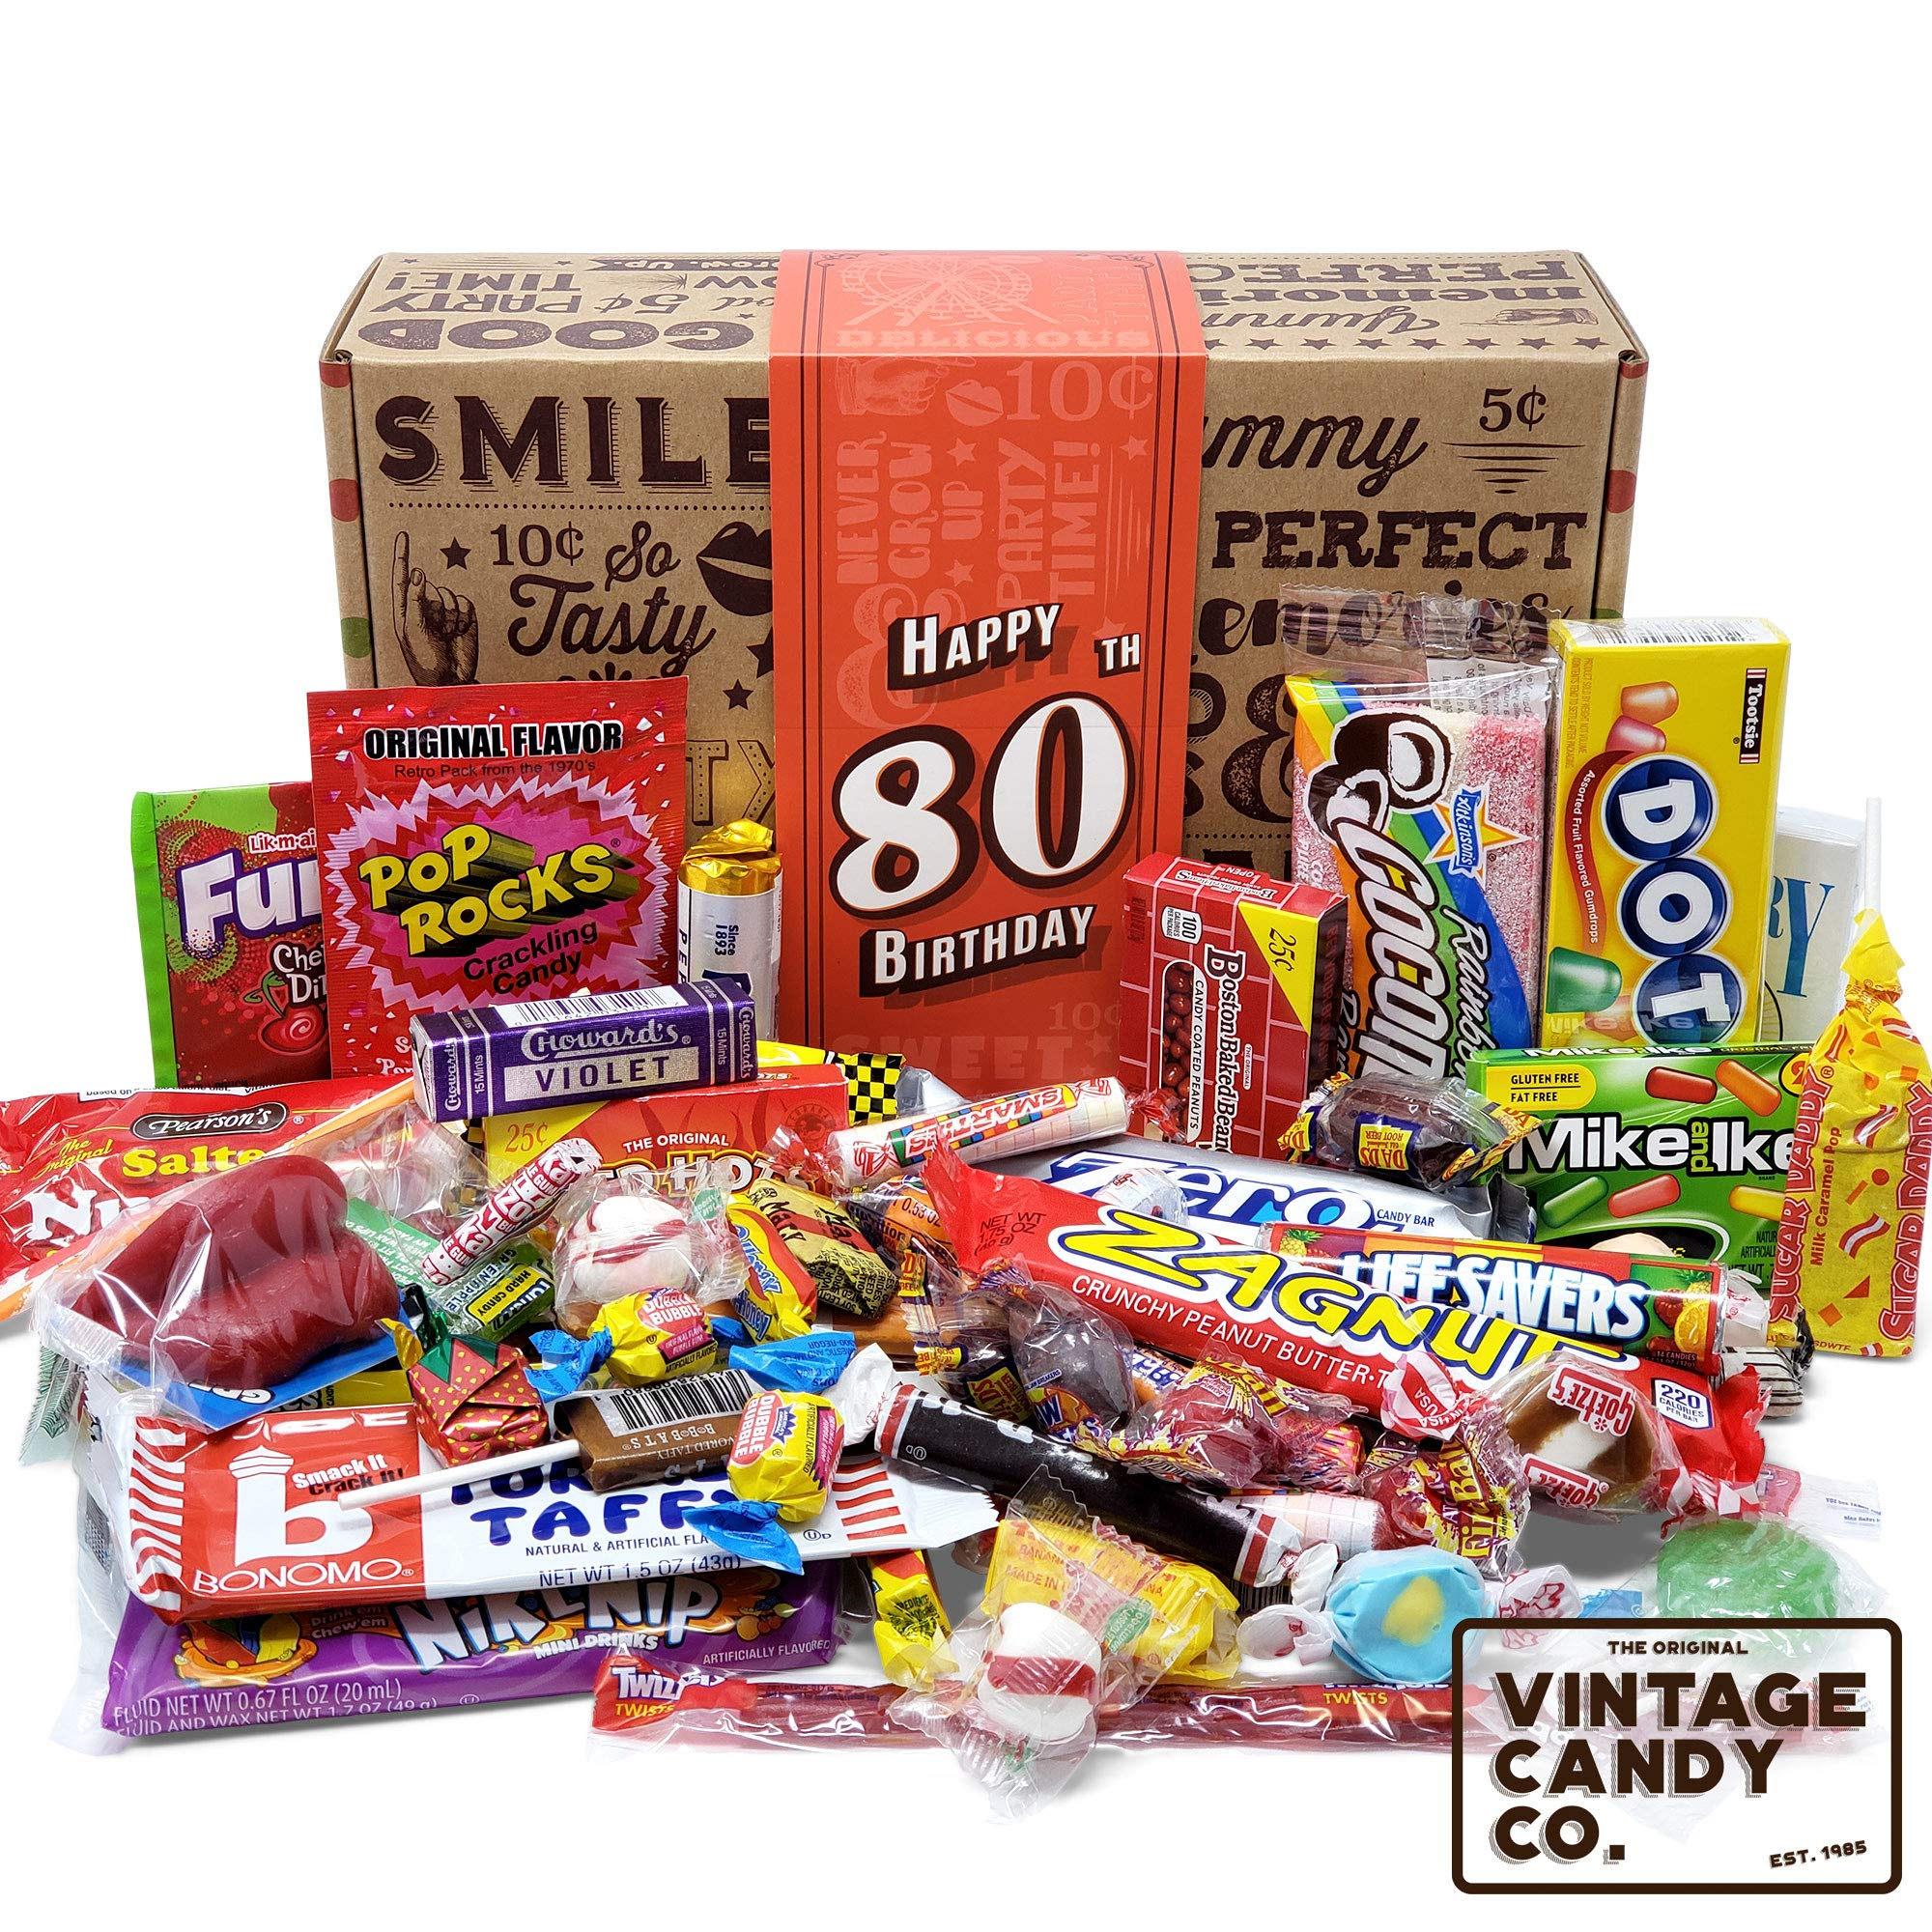 VINTAGE CANDY CO. 80TH BIRTHDAY RETRO CANDY GIFT BOX - 1939 Decade Nostalgic Childhood Candies - Fun Gag Gift Basket for Milestone EIGHTIETH Birthday - PERFECT For Man Or Woman Turning 80 Years Old by Vintage Candy Co.